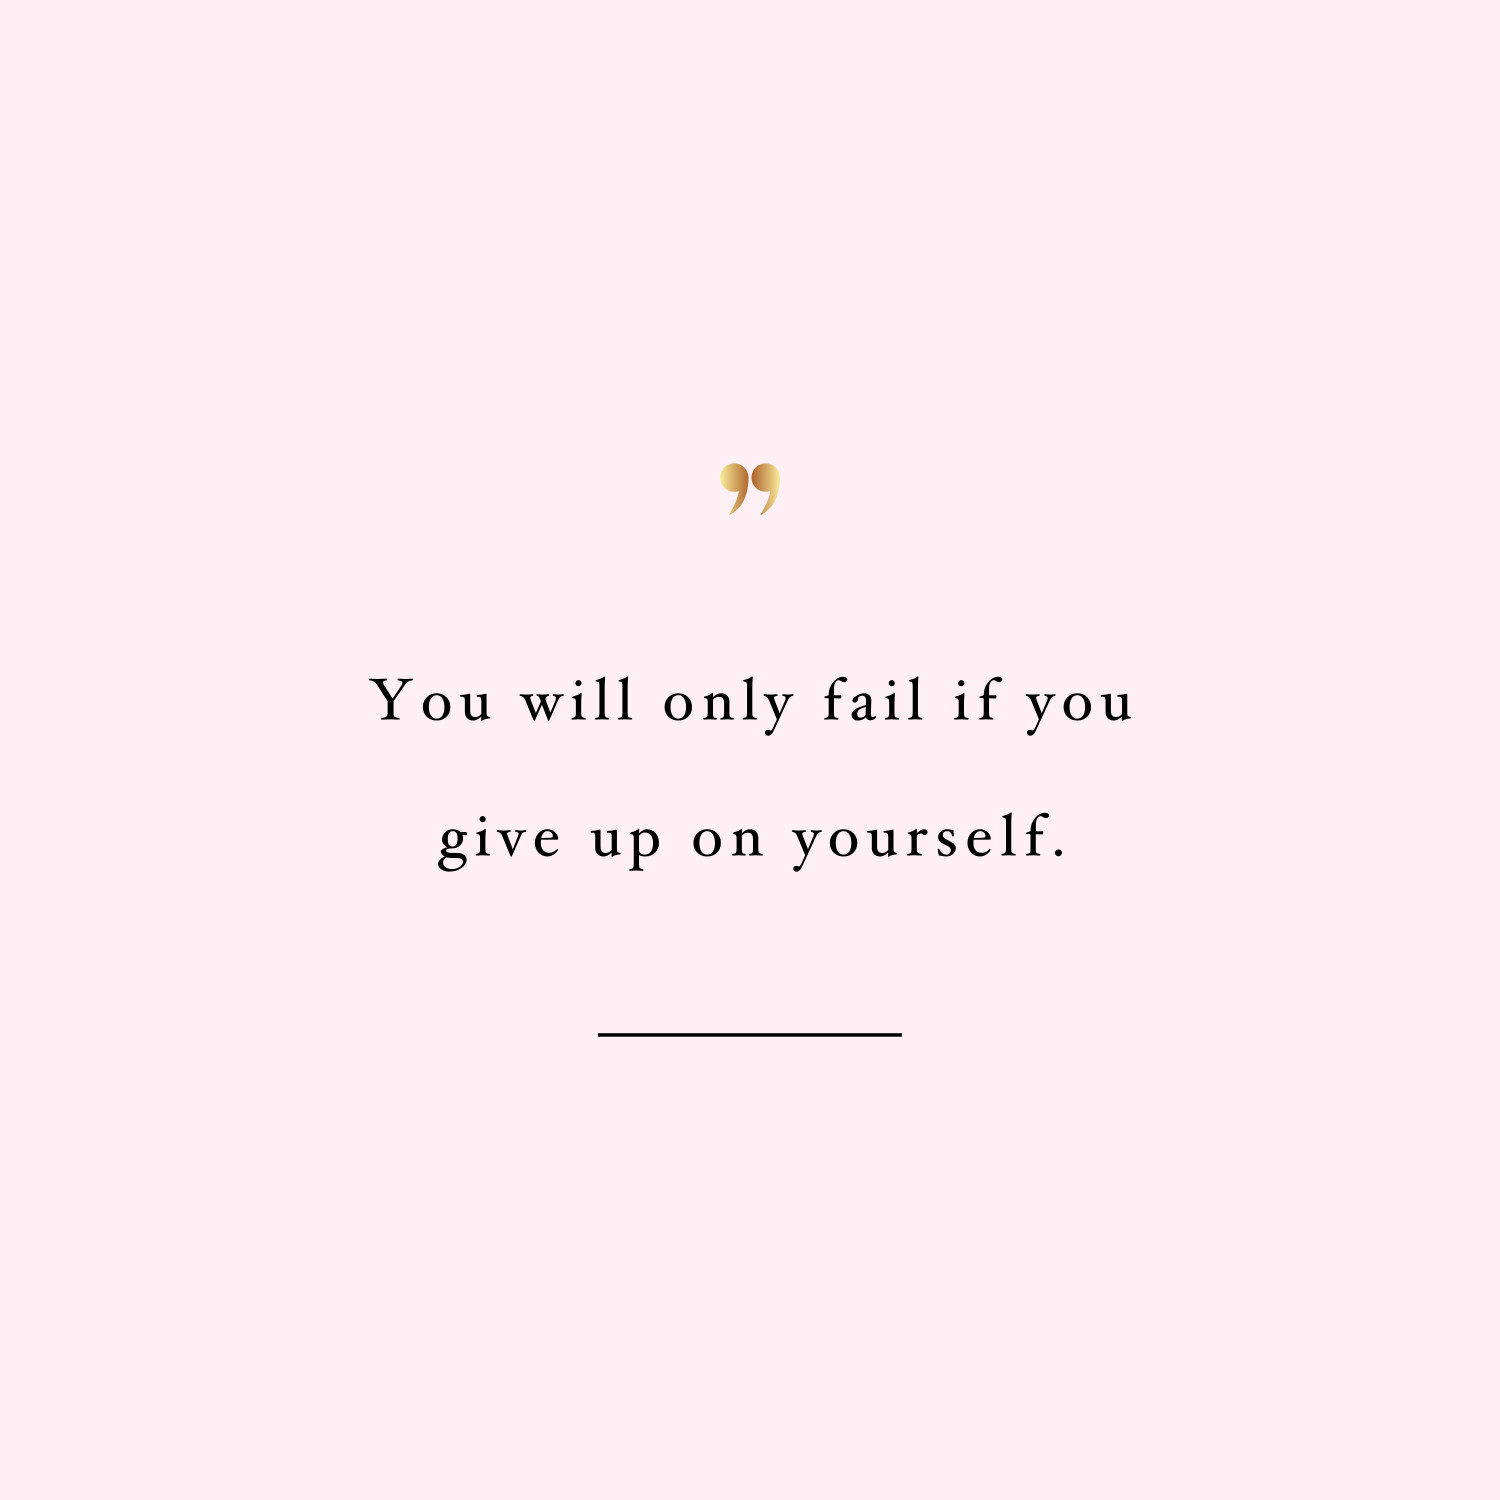 Don't fail! Browse our collection of motivational exercise and weight loss quotes and get instant health an fitness inspiration. Transform positive thoughts into positive actions and get fit, healthy and happy! https://www.spotebi.com/workout-motivation/dont-fail-exercise-and-weight-loss-quote/